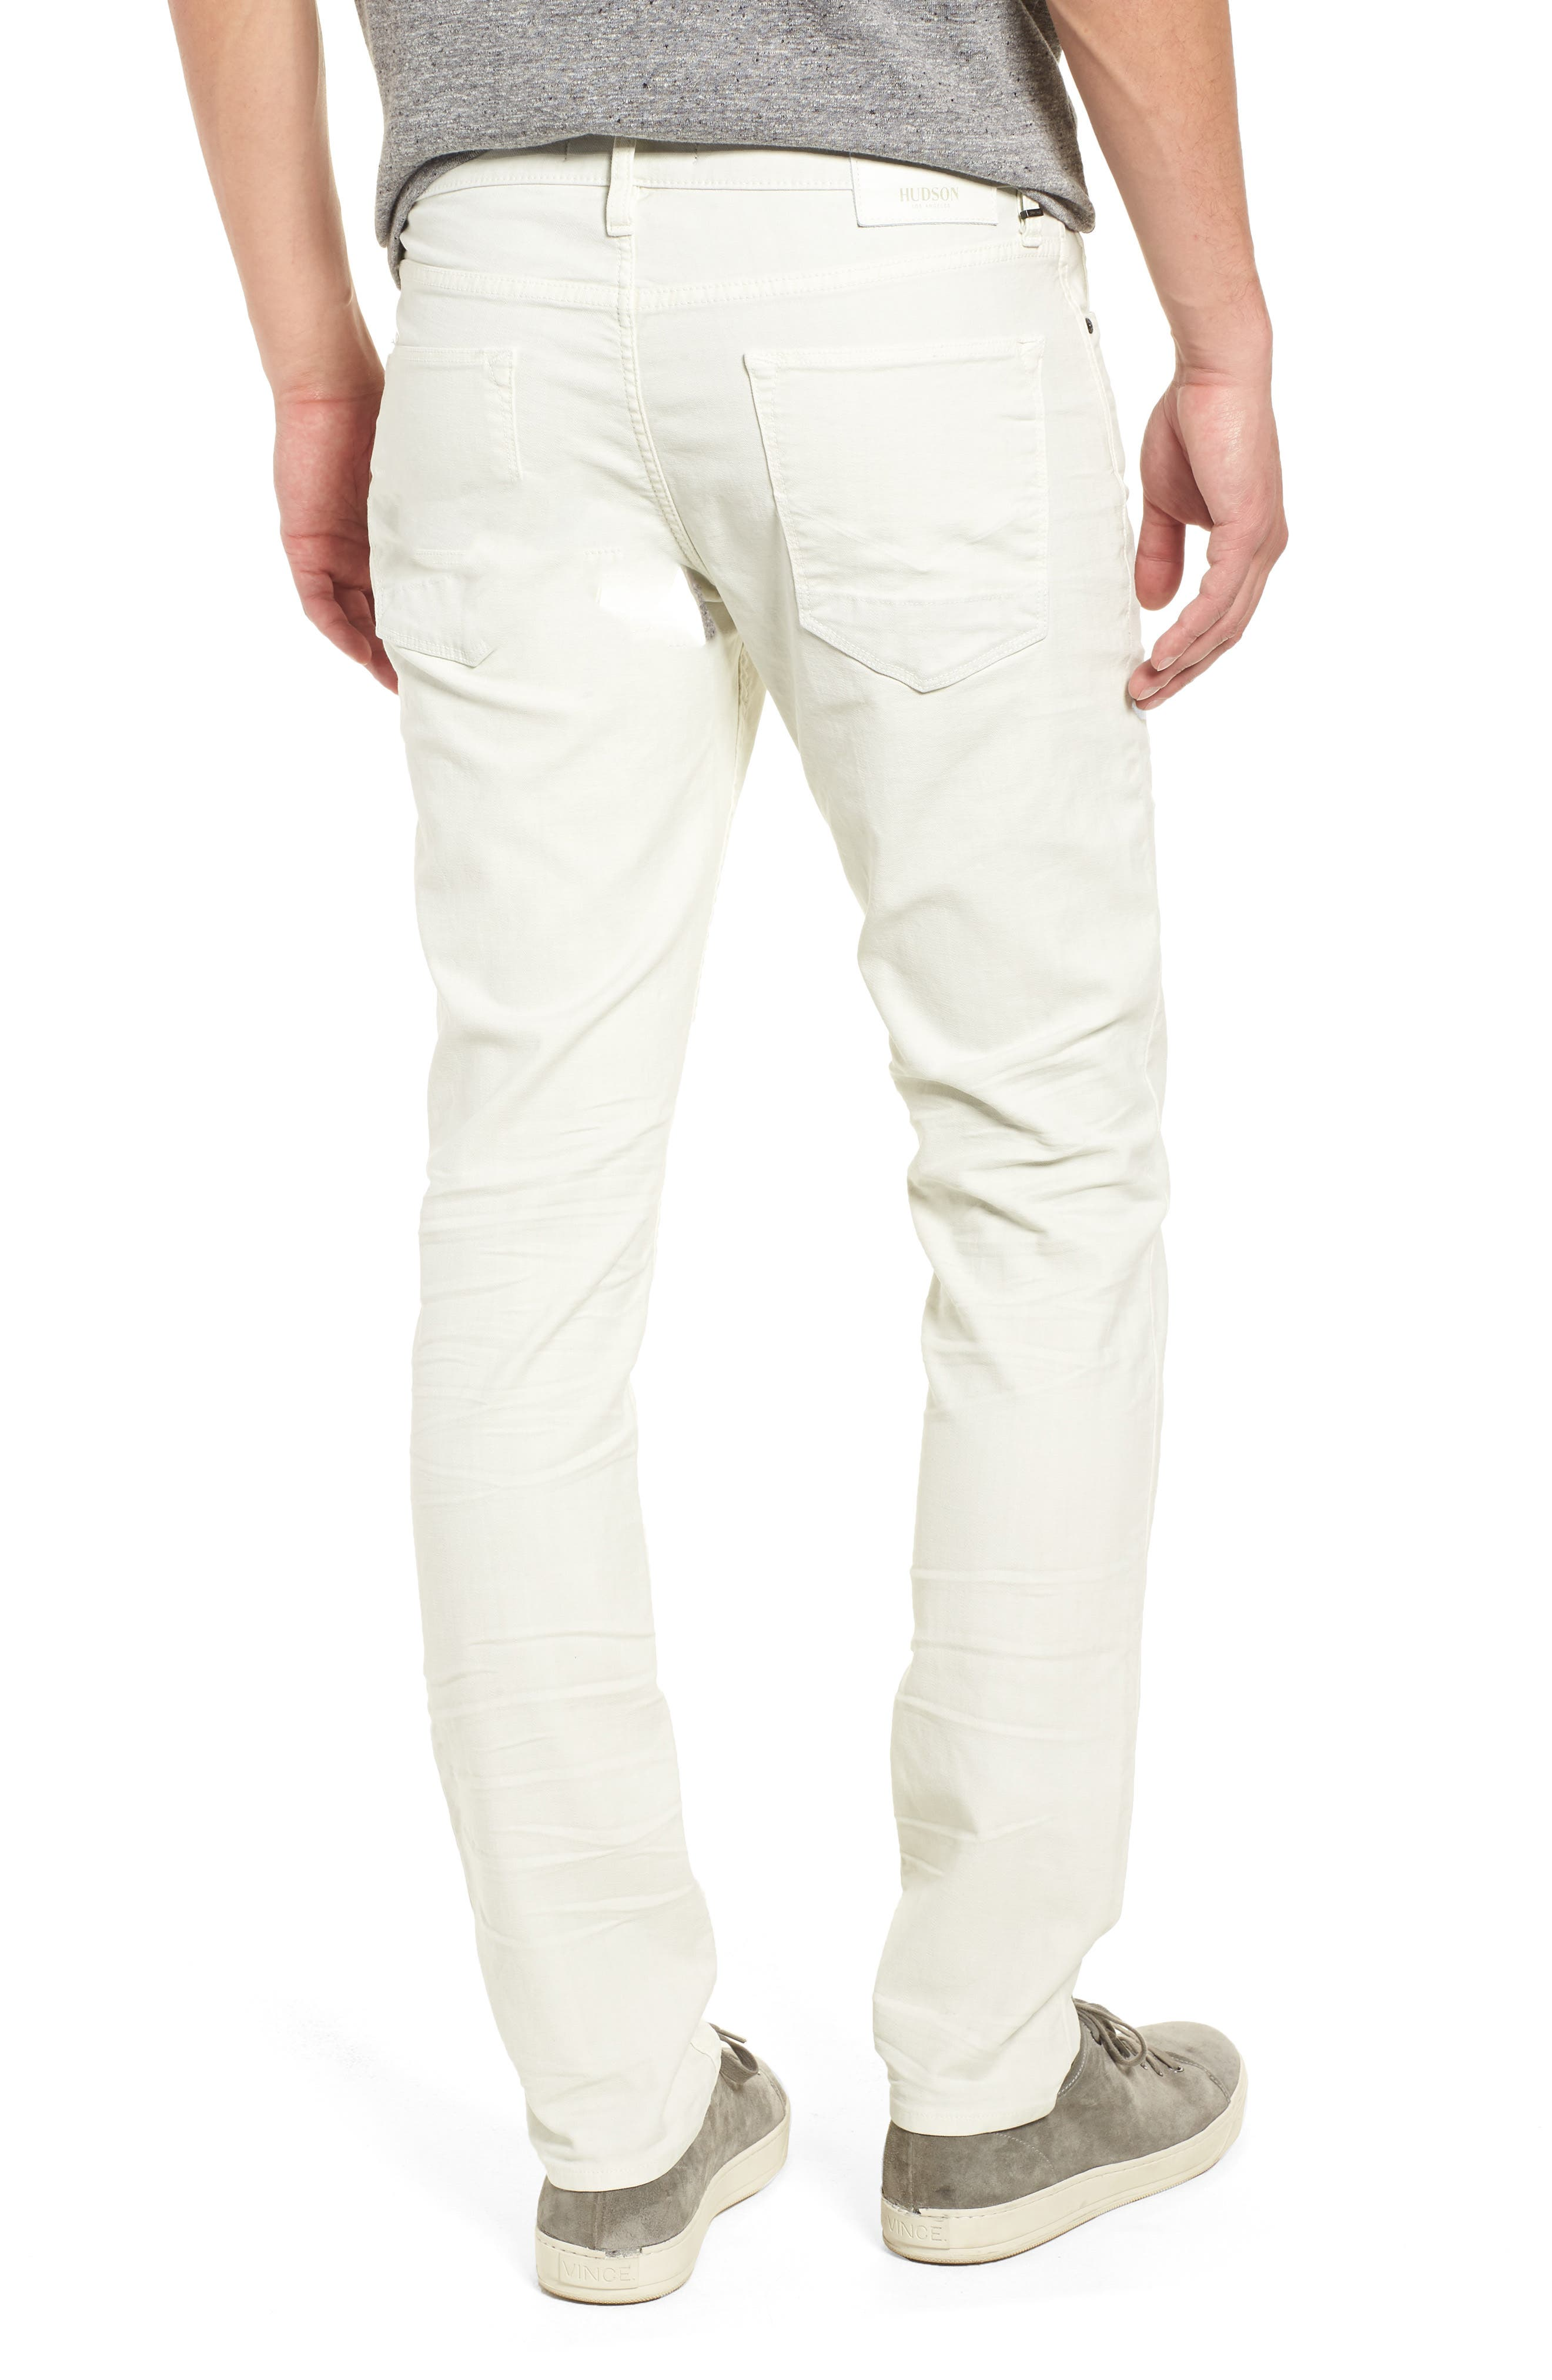 Hudson Axl Skinny Fit Jeans,                             Alternate thumbnail 2, color,                             DIRTY WHITE